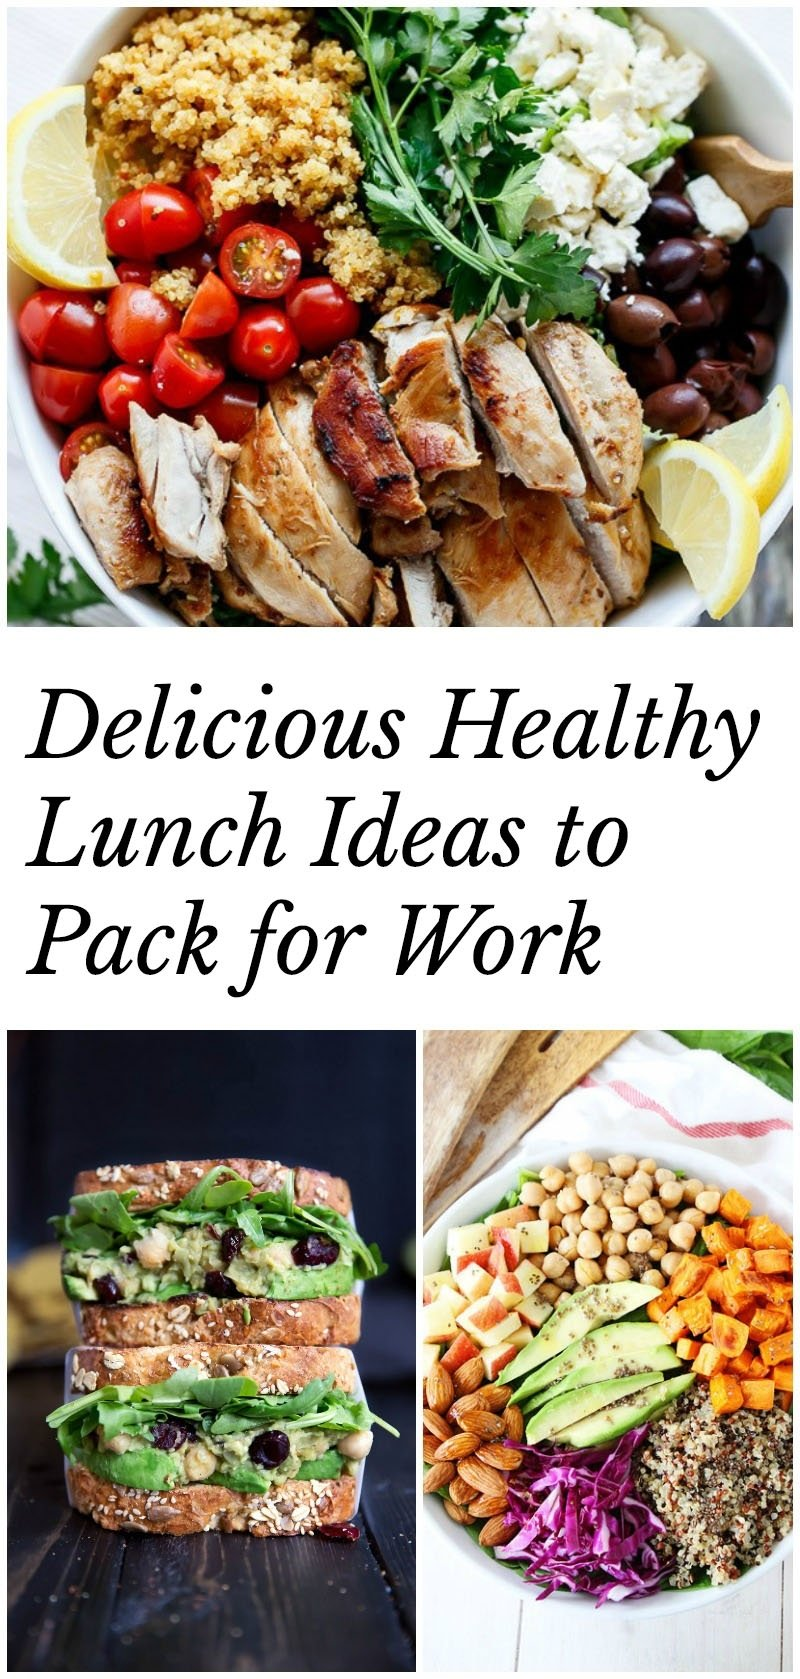 10 Perfect Bring Lunch To Work Ideas healthy lunch ideas to pack for work 40 recipes 23 2020